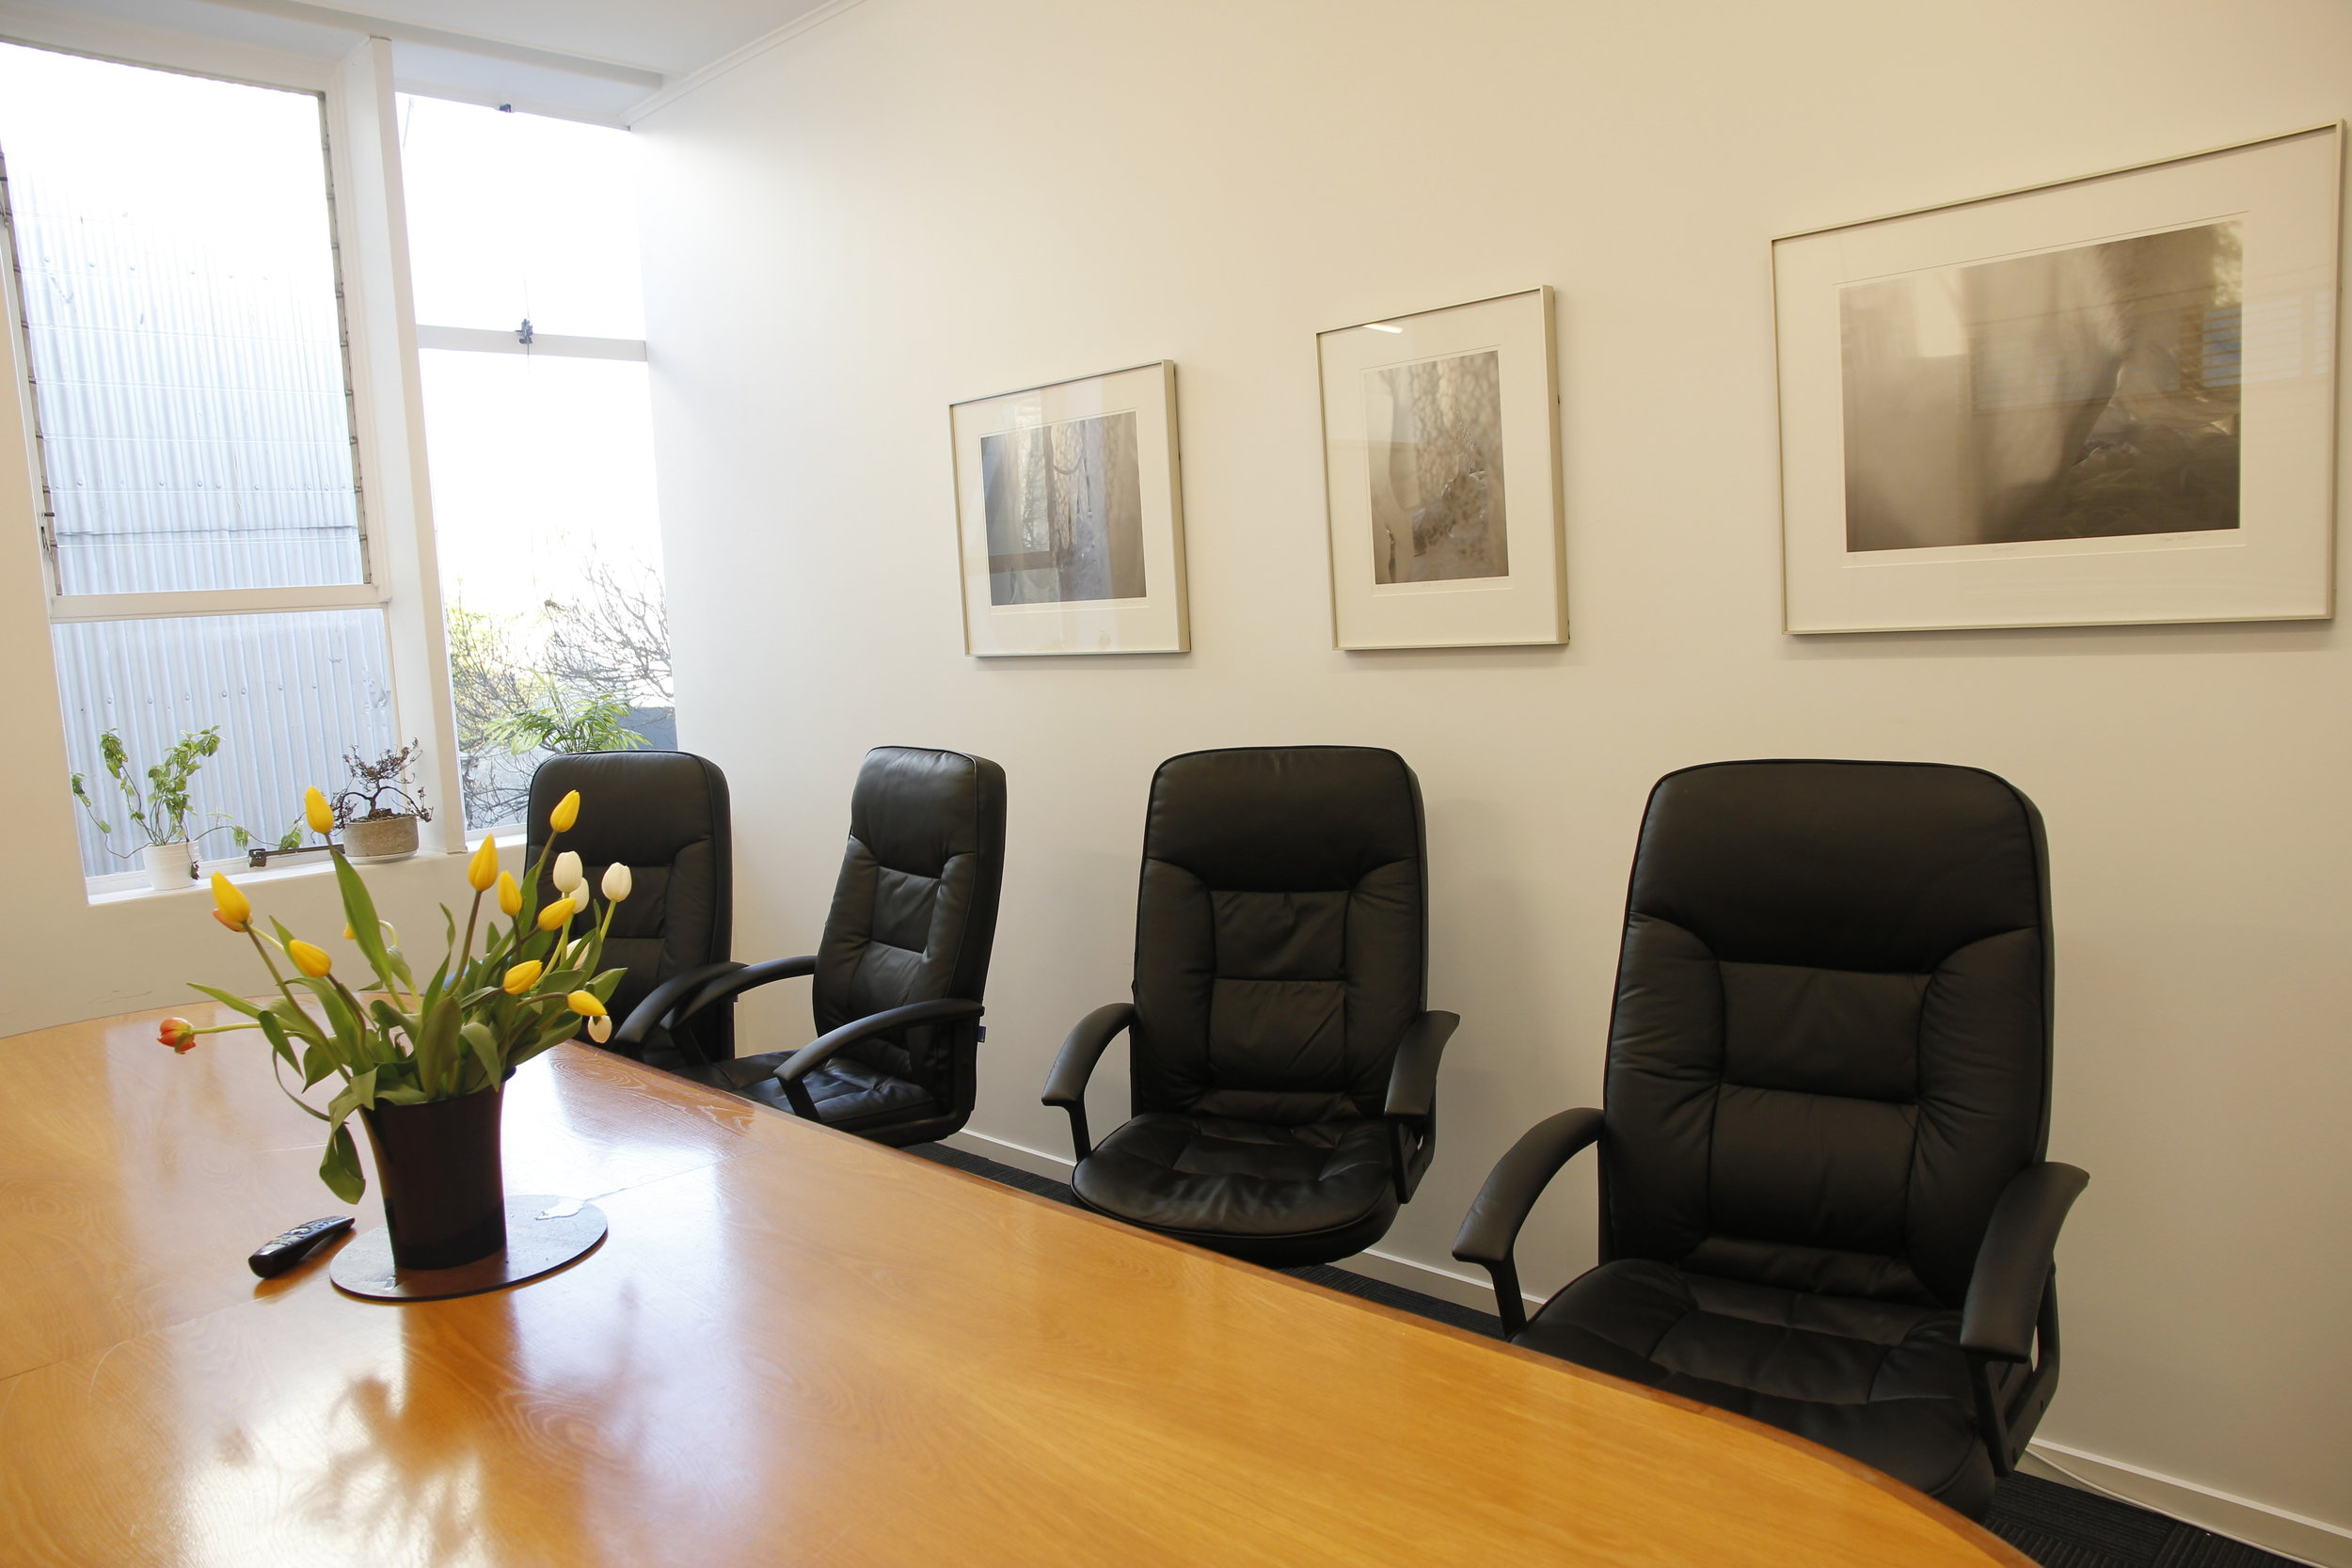 The board room offers the perfect space to host clients